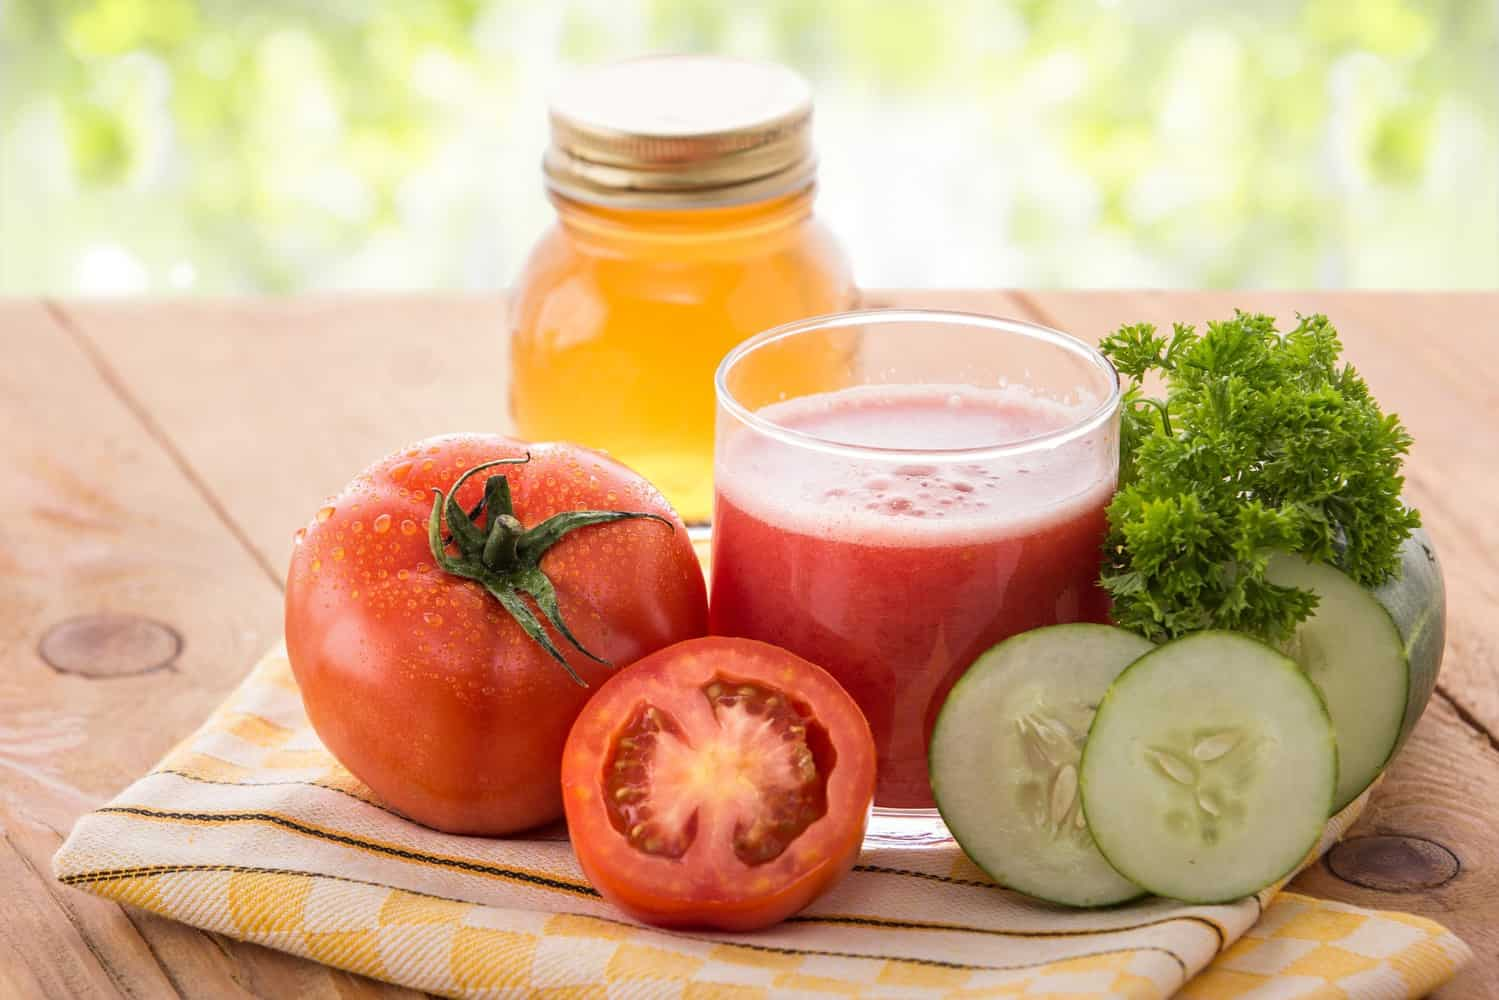 A glass of tomato juice with some tomatoes, cucumbers and a glass of liquid